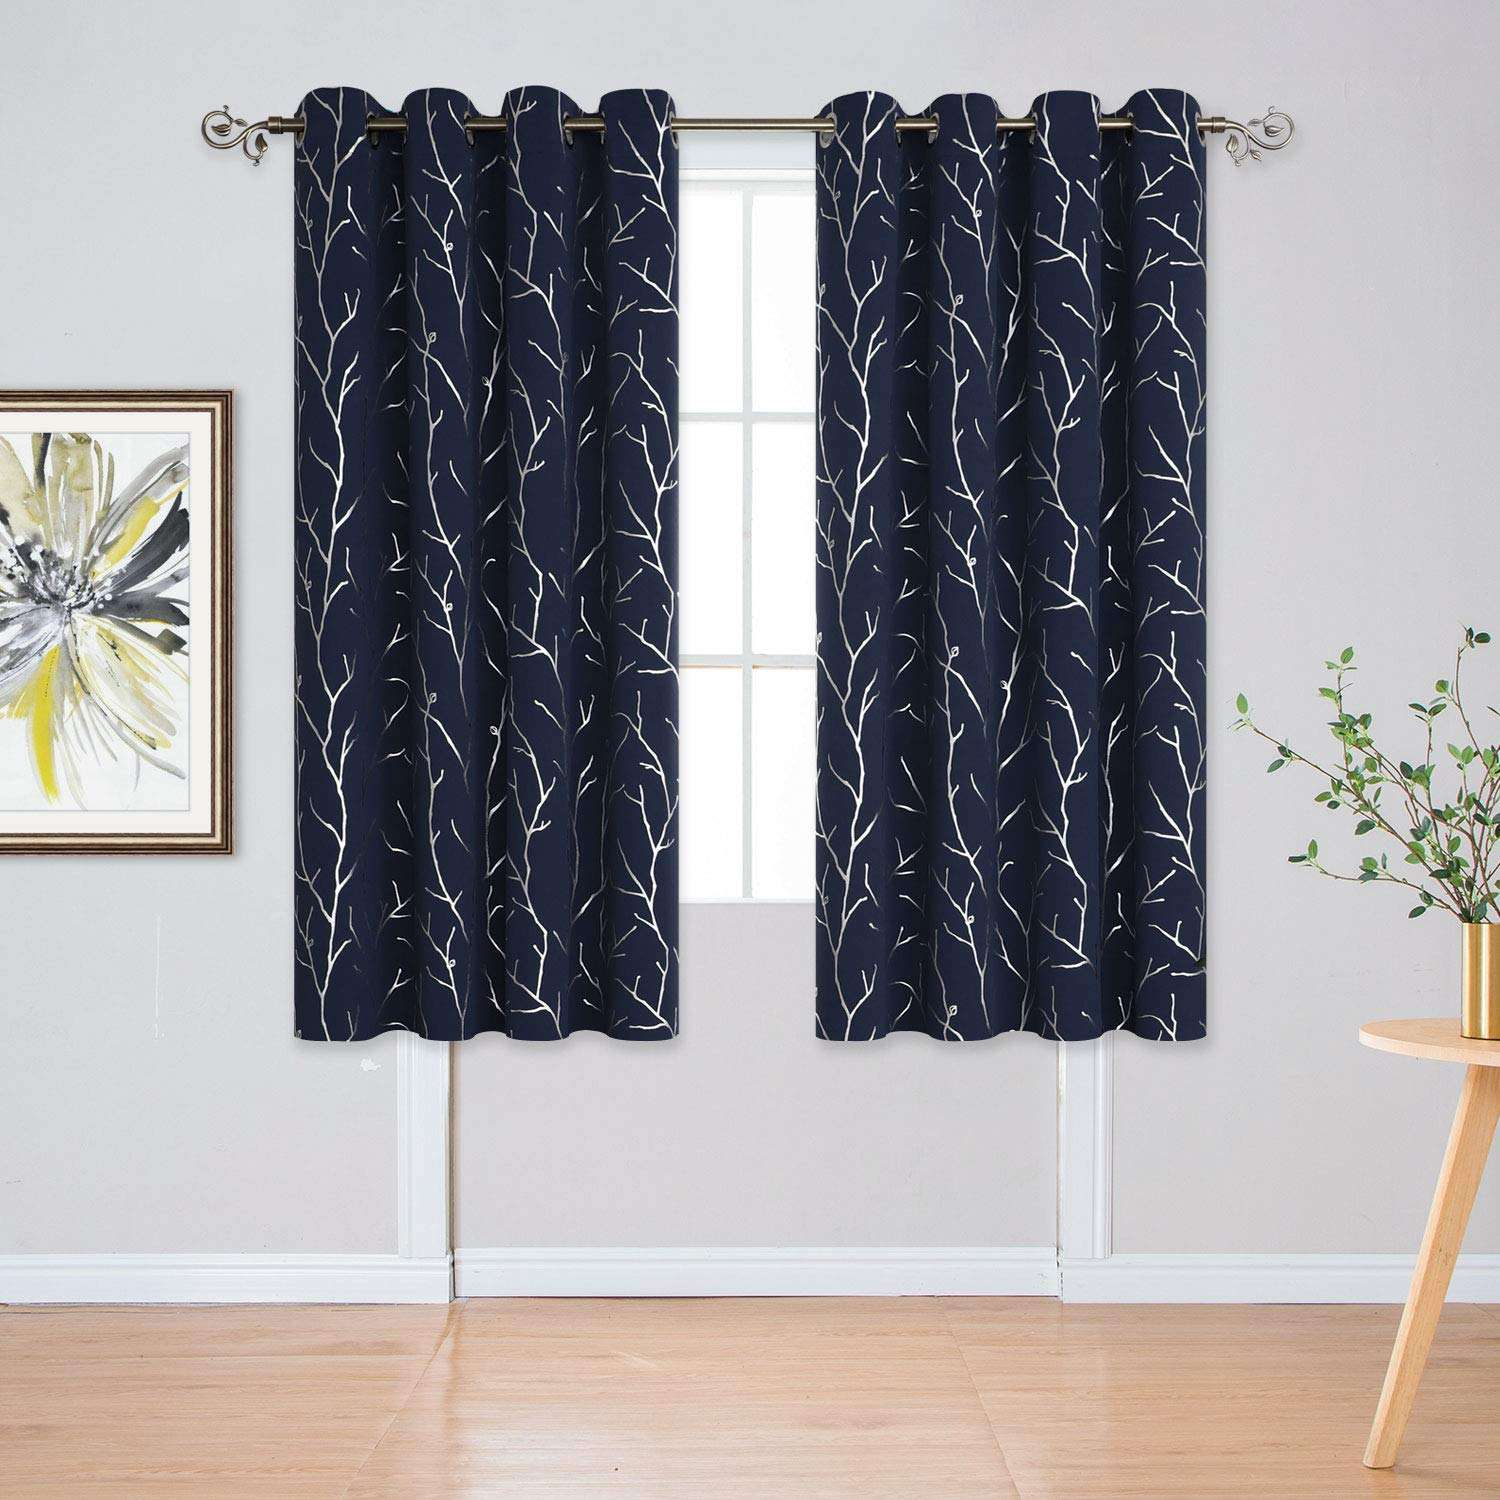 wholesale luxury velvet bedroom curtain cloth turkish cheap living room Draperies sheer valance curtains from china 2020